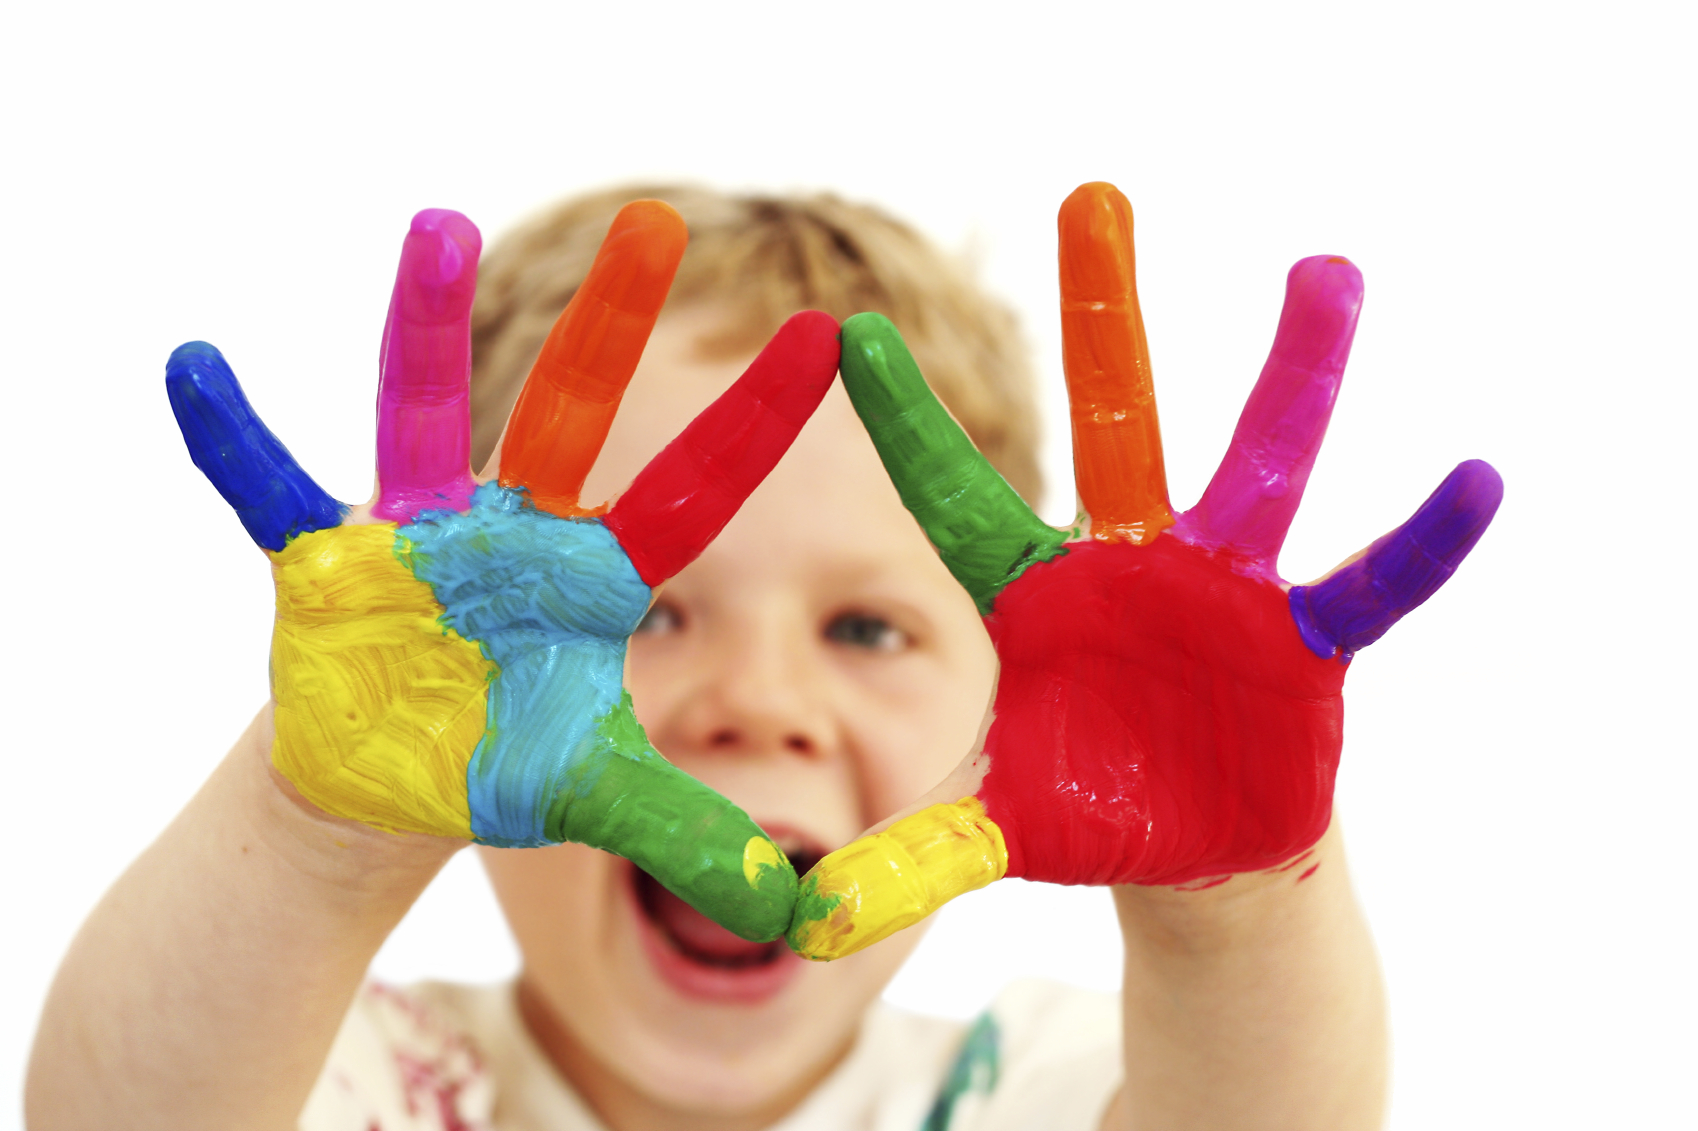 Young Child with Rainbow Painted Hands